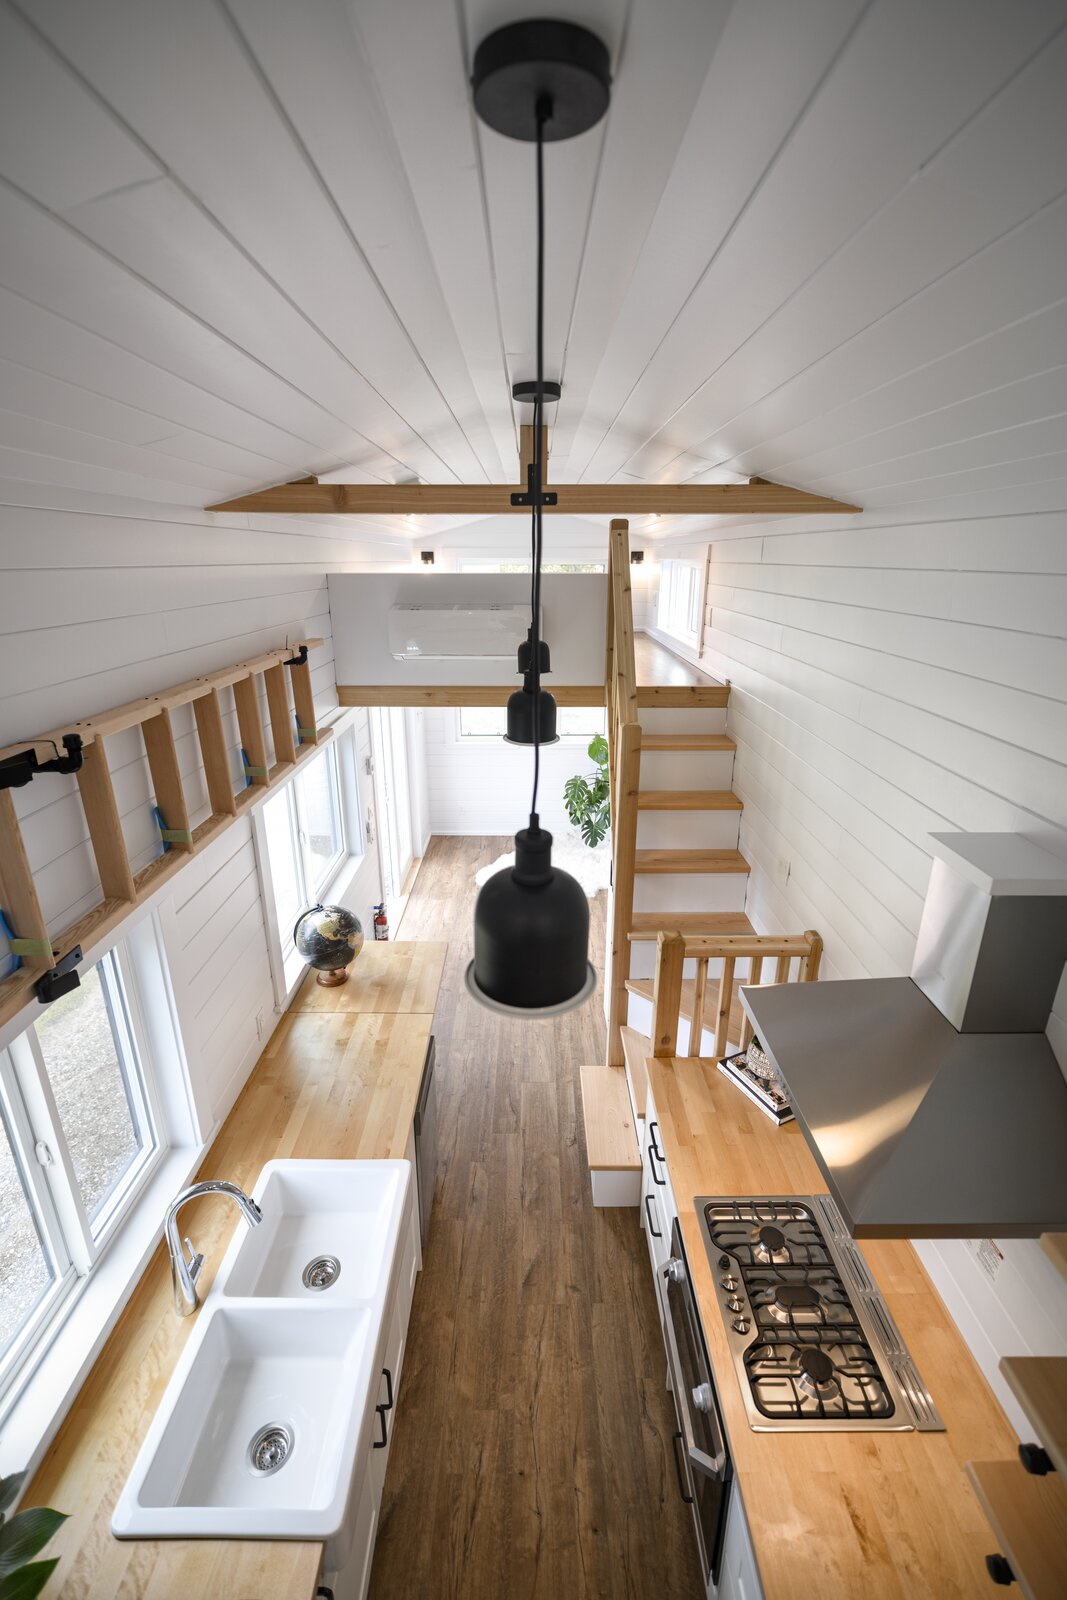 Kitchen, Laminate, White, Ceiling, Range Hood, Wood, Vinyl, Drop In, and Cooktops Ceilings that are over 10 feet tall provide a feeling of airiness for the tiny home.  Kitchen Vinyl White Range Hood Photos from One Family's 416-Square-Foot Digs Expand the Limits of Tiny Home Living